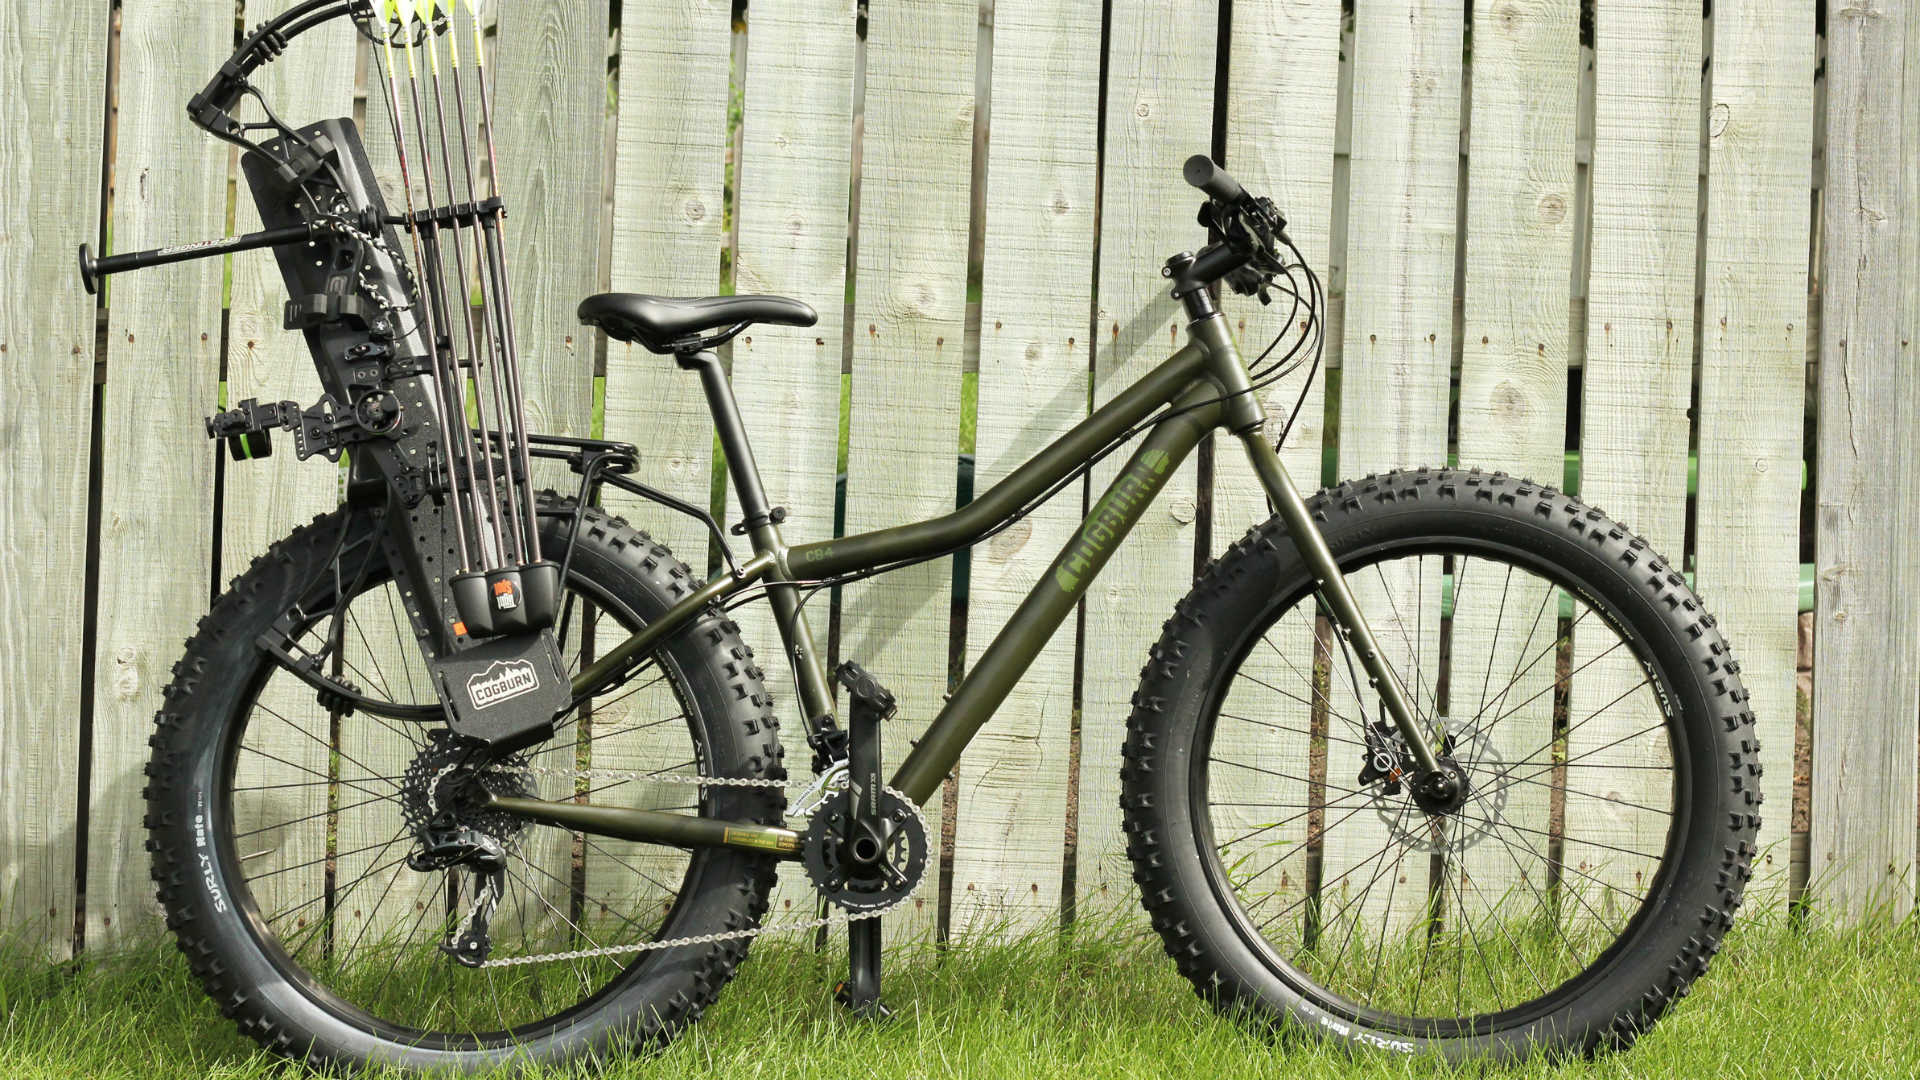 Hunting on two wheels: Pros and cons of hunting on a bike ...